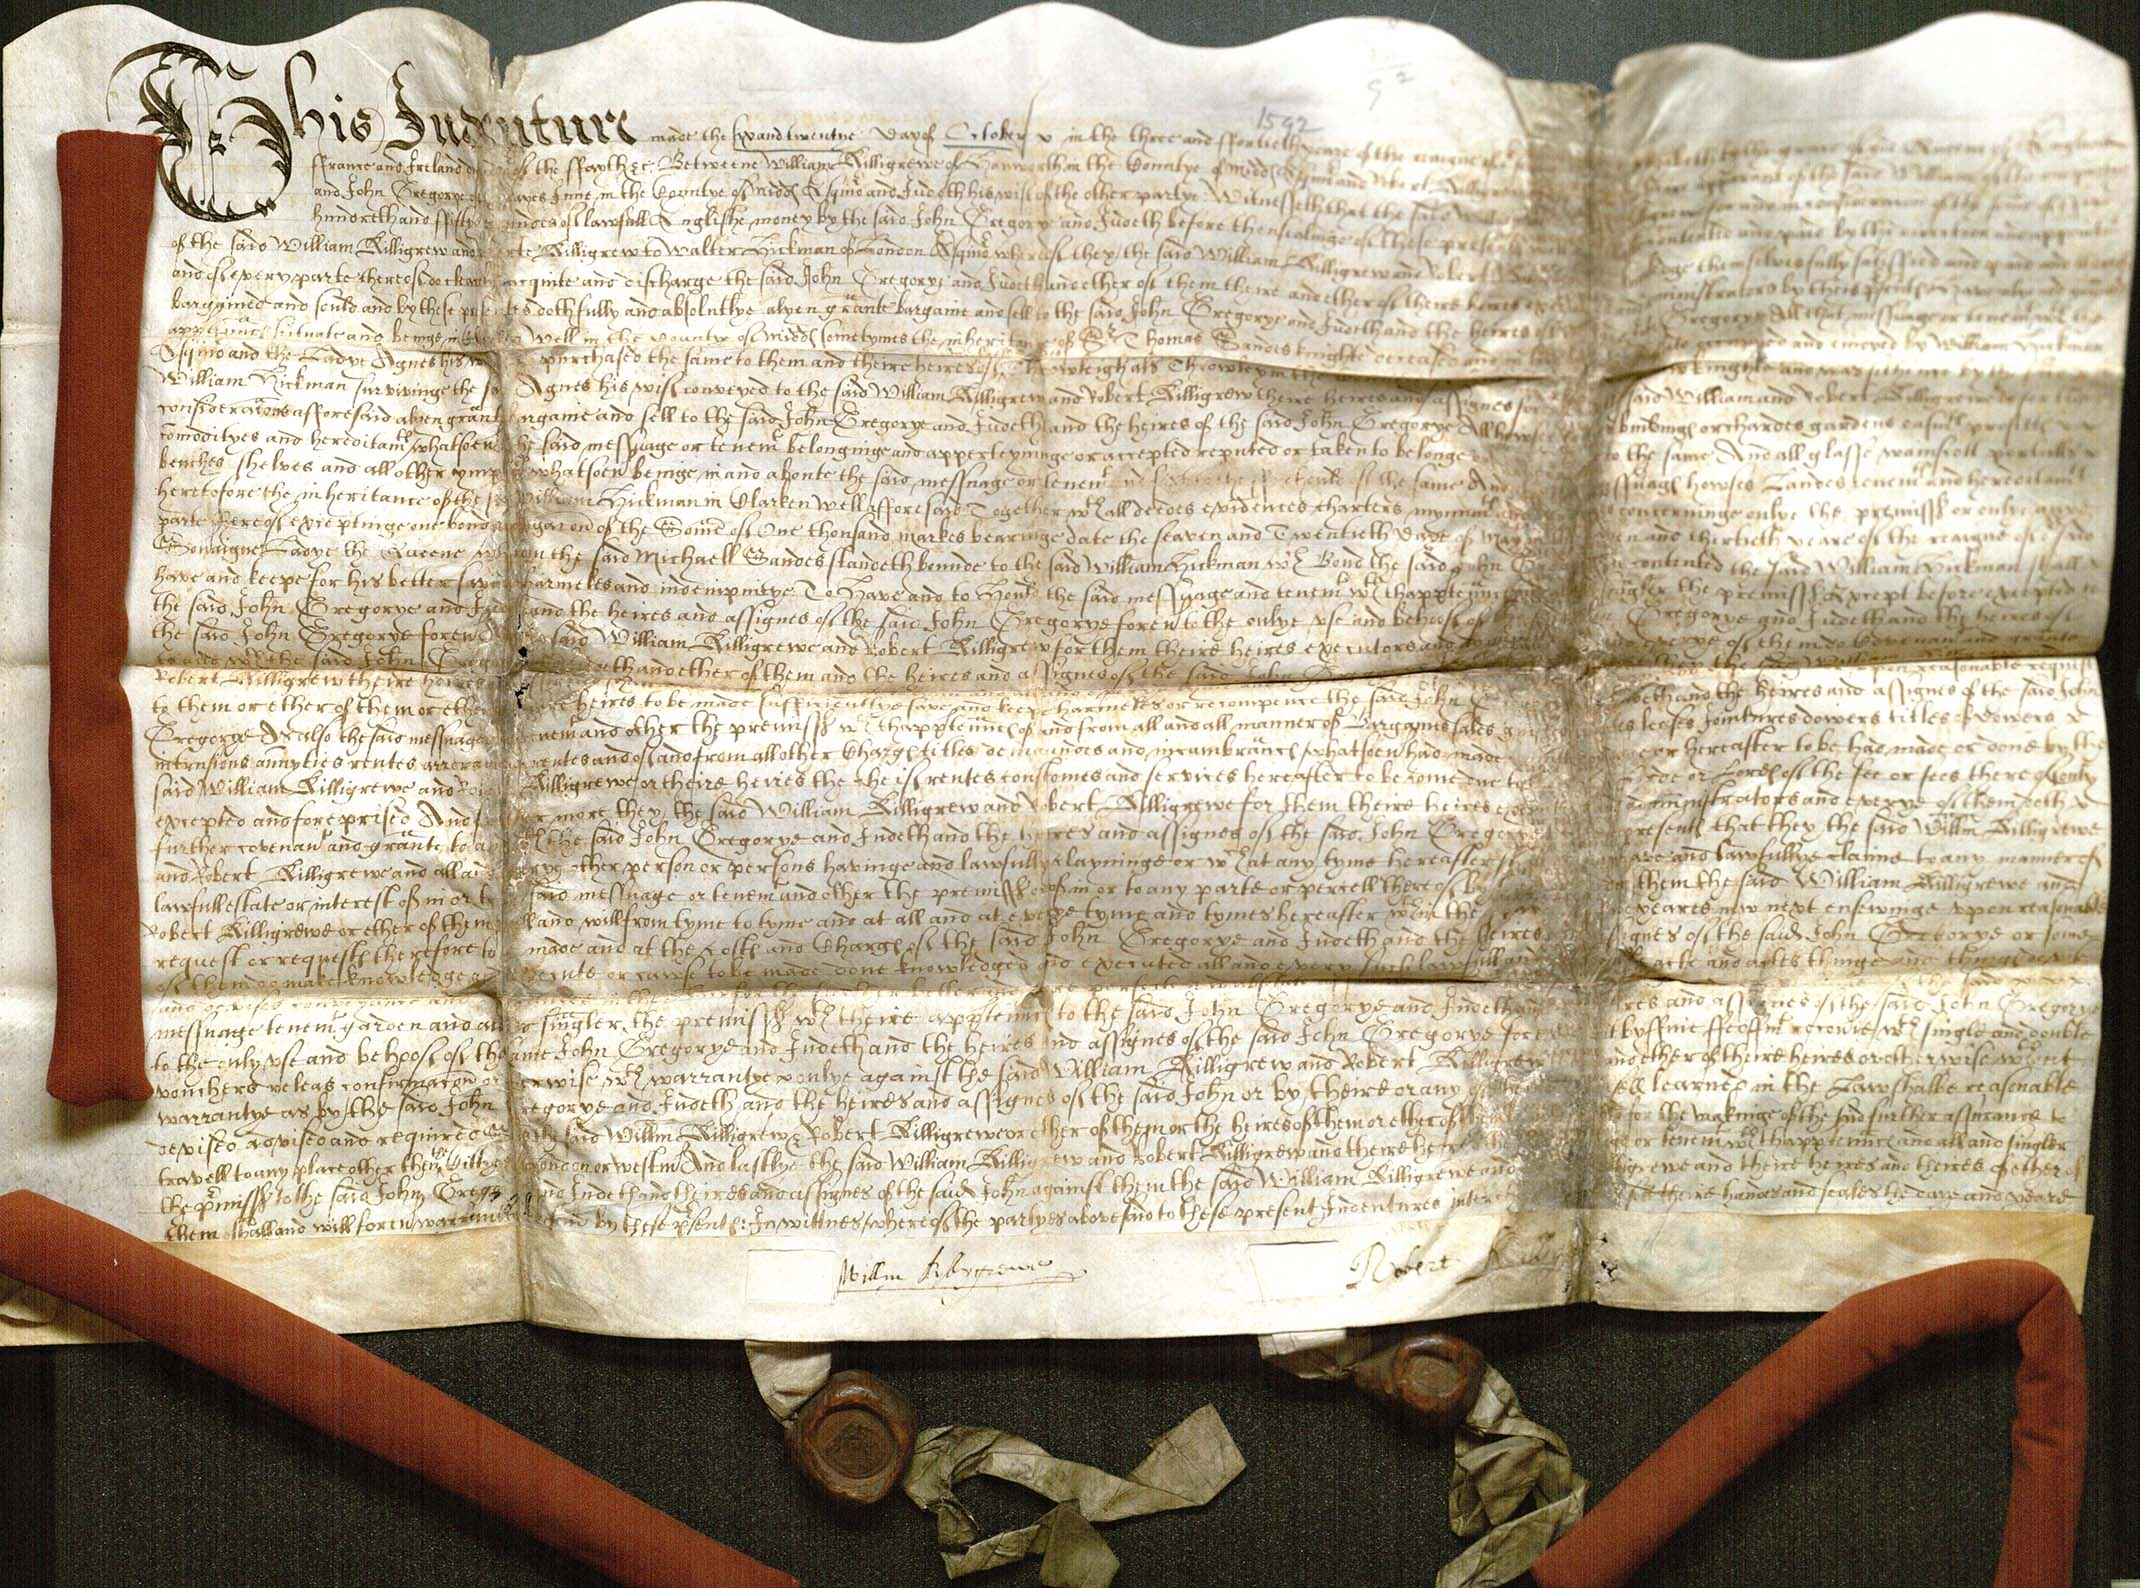 Deed of covenant by William Killigrew and his son, Robert, agreeing to sell a messuage (dwelling house, outbuildings, and land) in Clerkenwell Parish, Middlesex to John Gregorye and his wife, Judith.